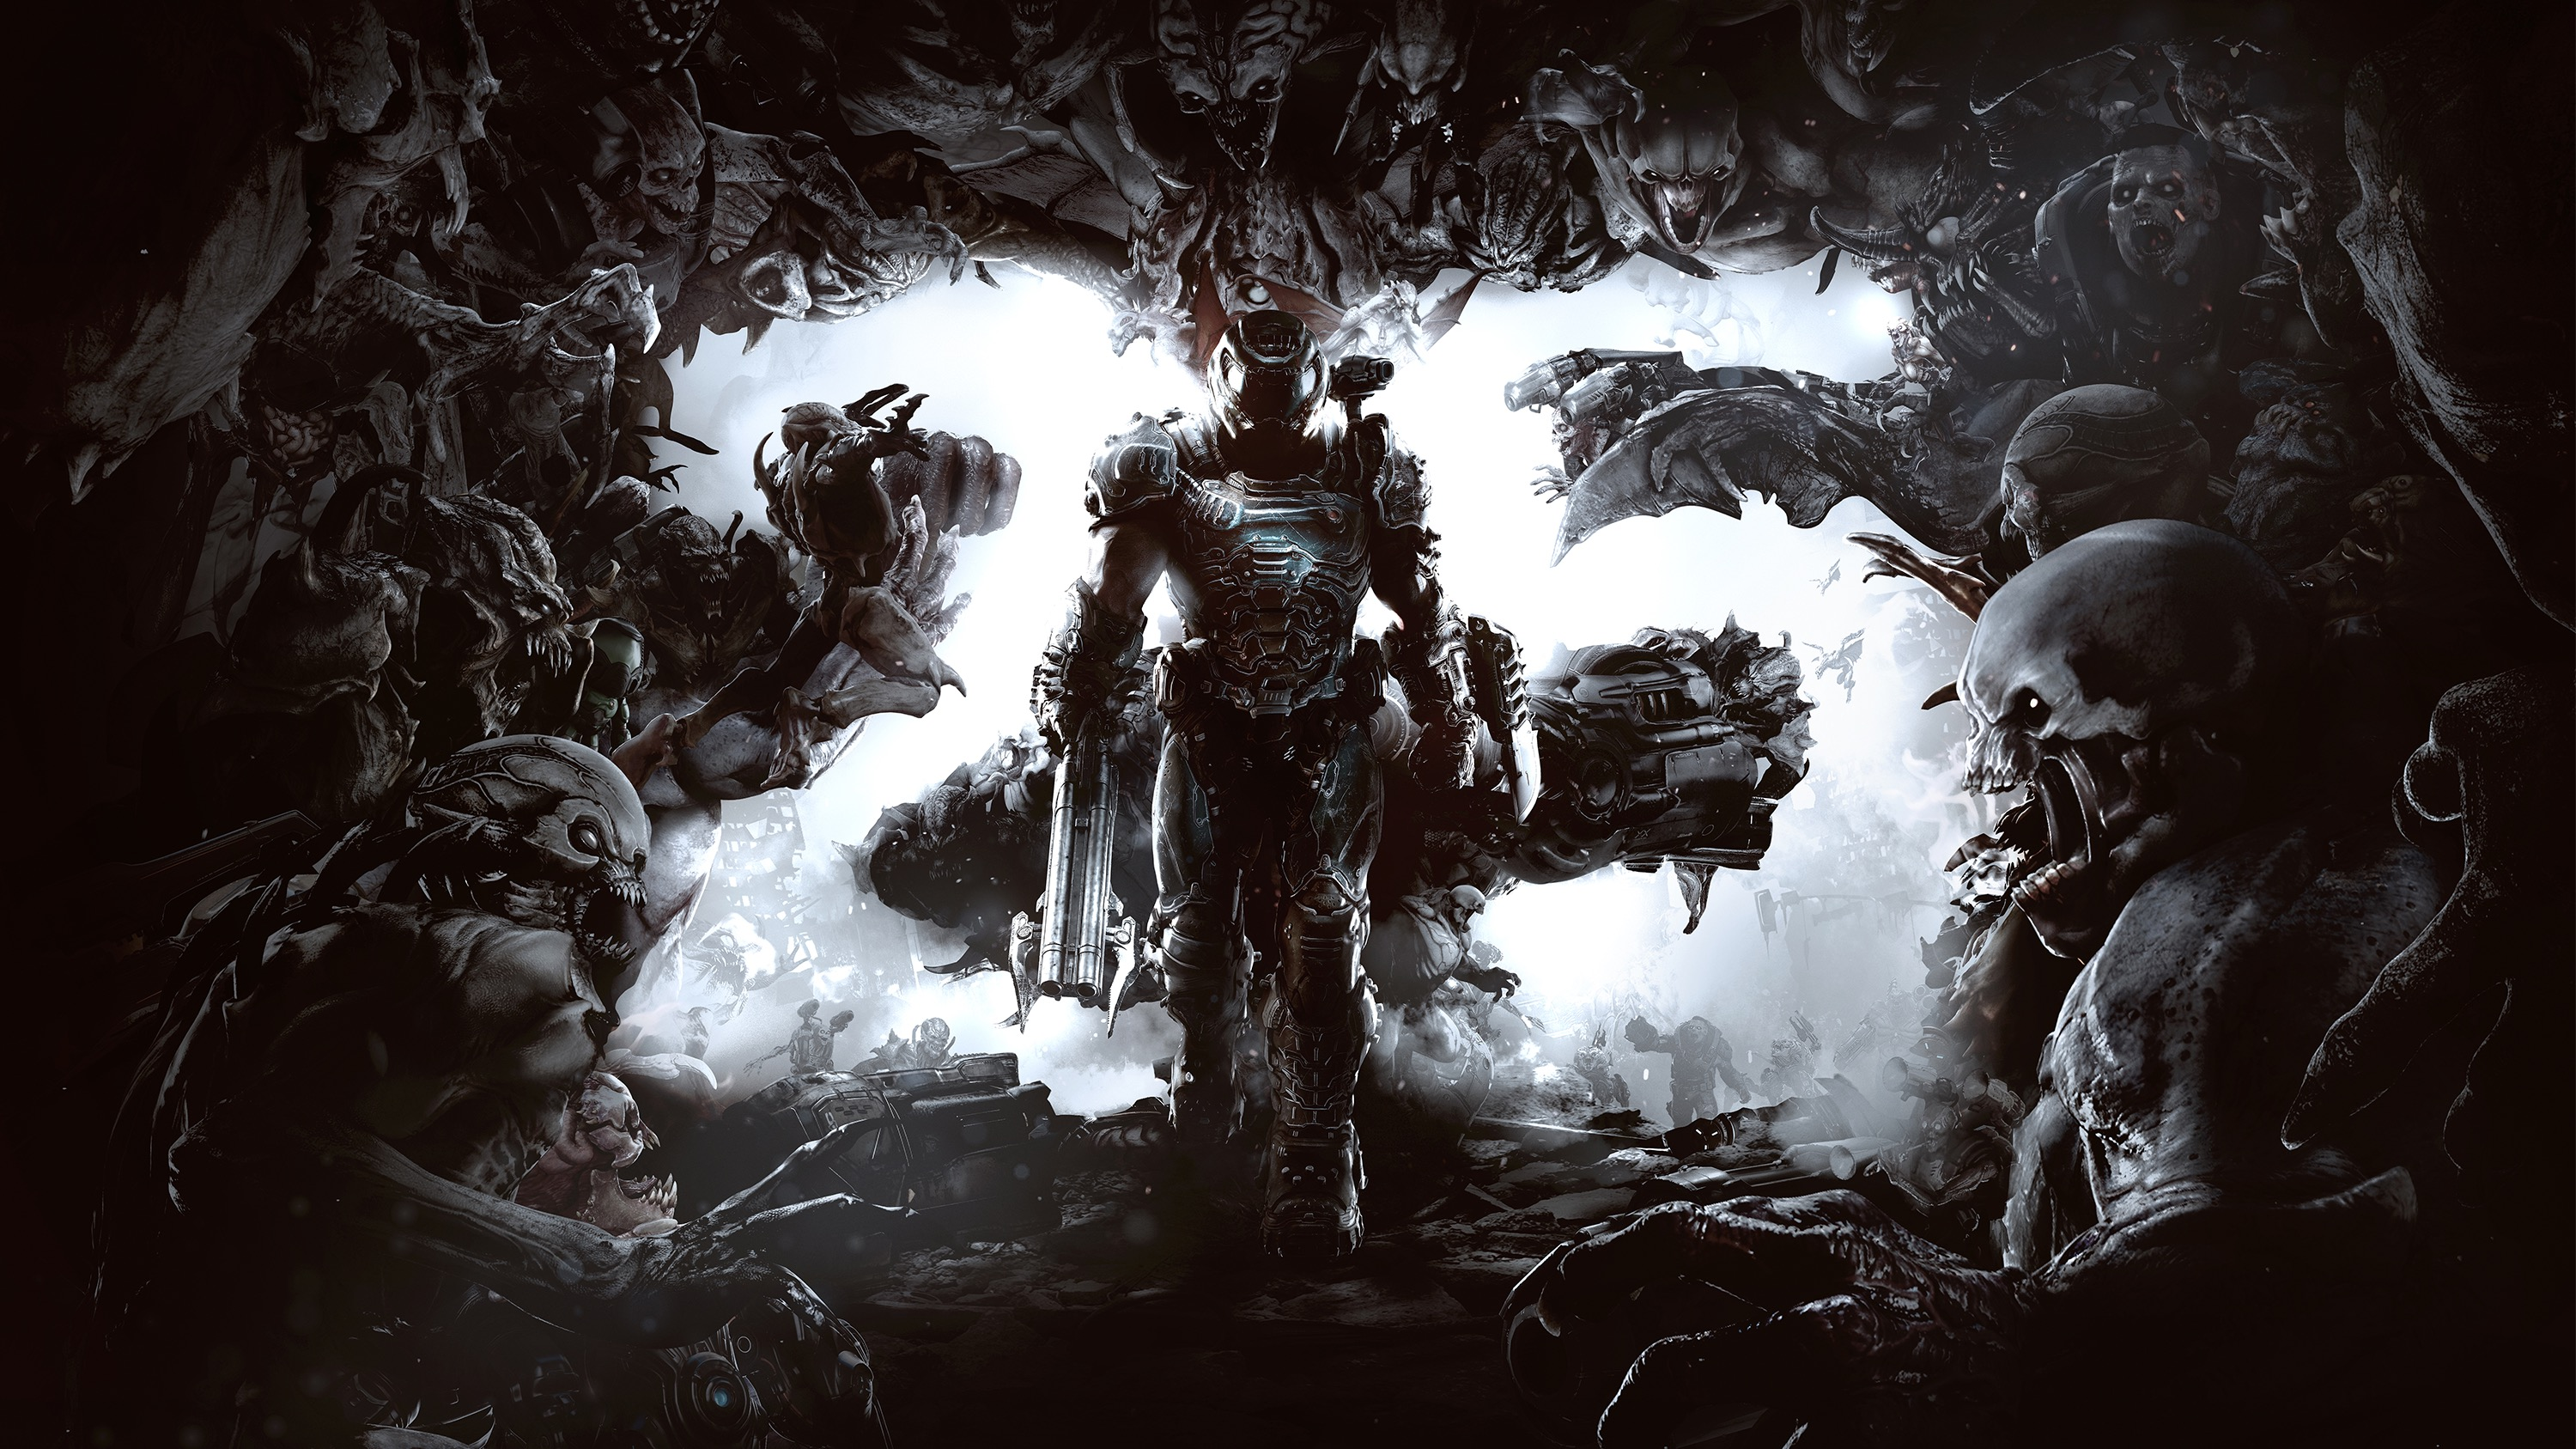 Let's assume for a second that DOOM Eternal is exclusive to the